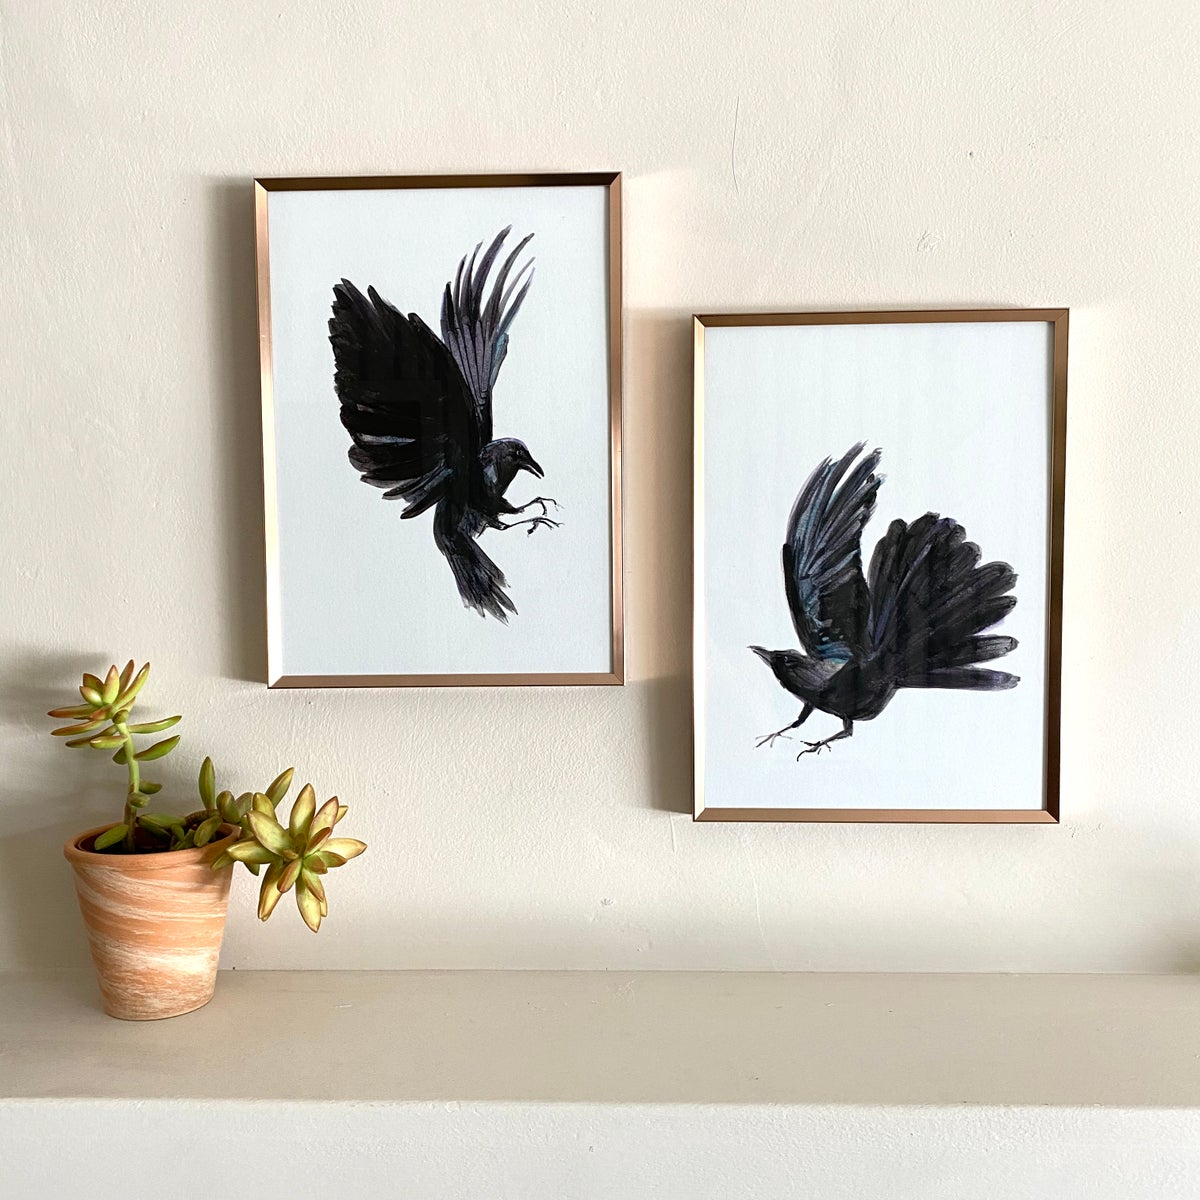 Image of 'Pair of Crows' - limited edition Giclee print(s)